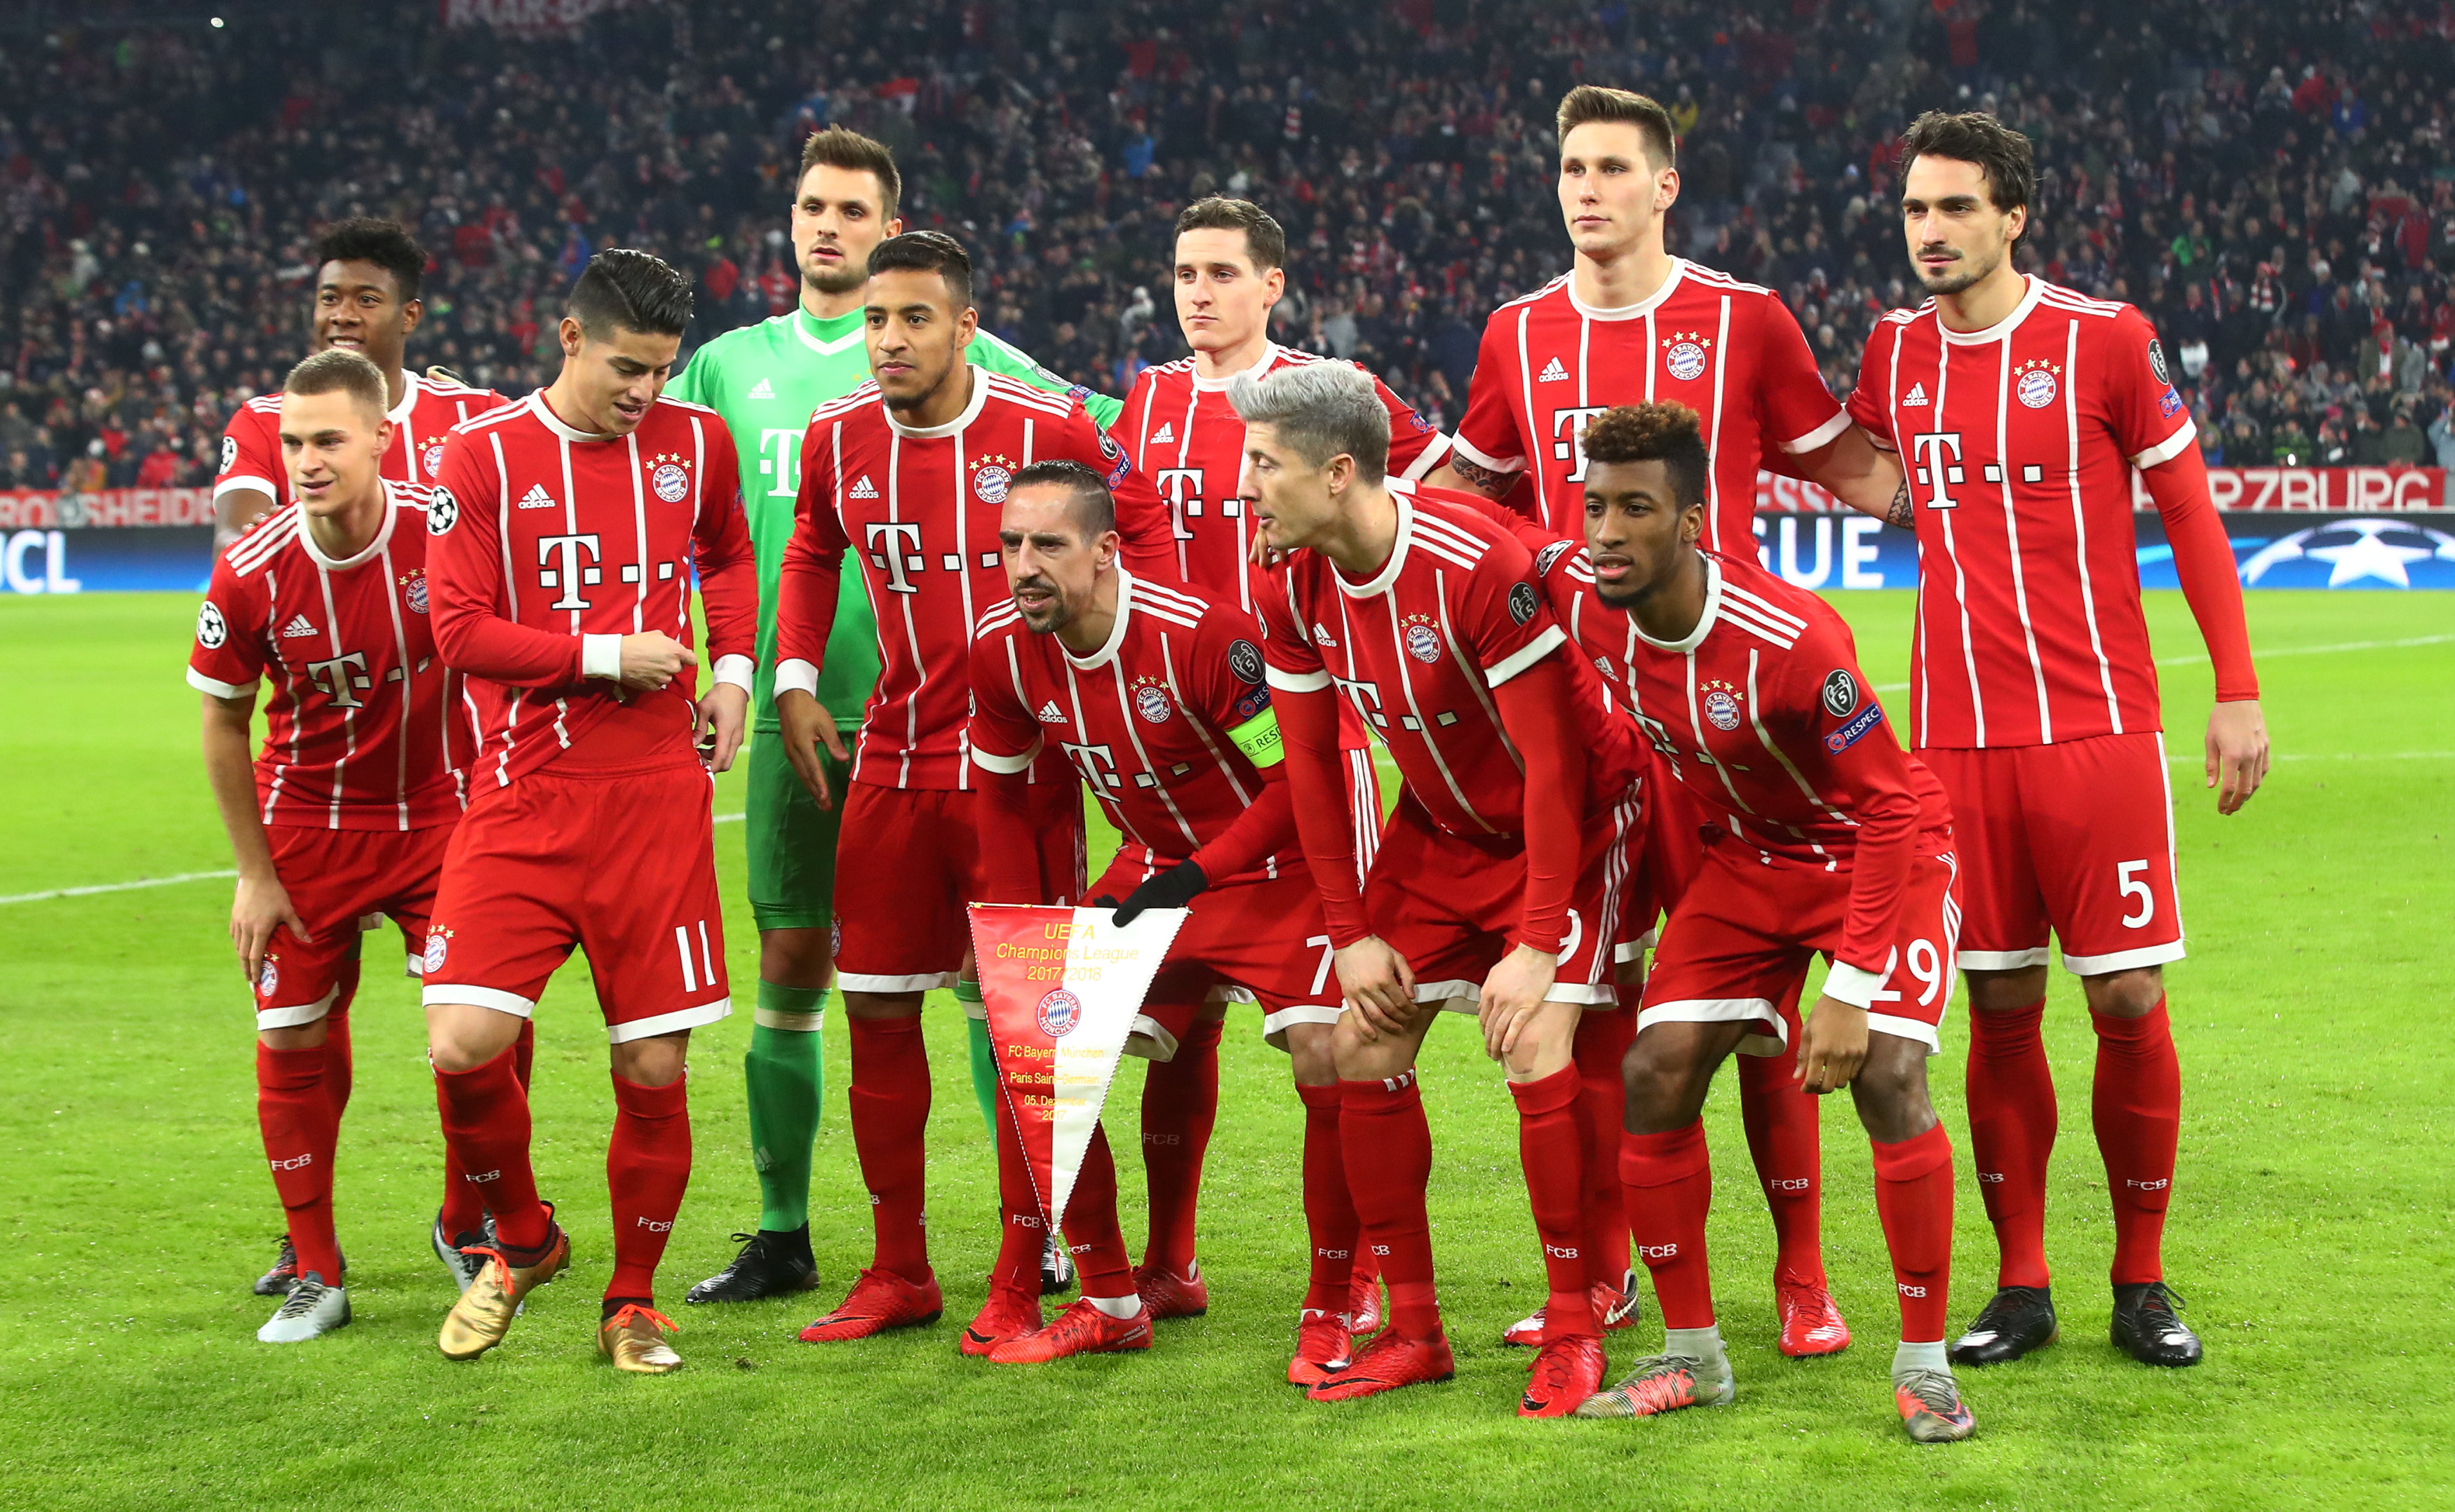 bayern munich - photo #41